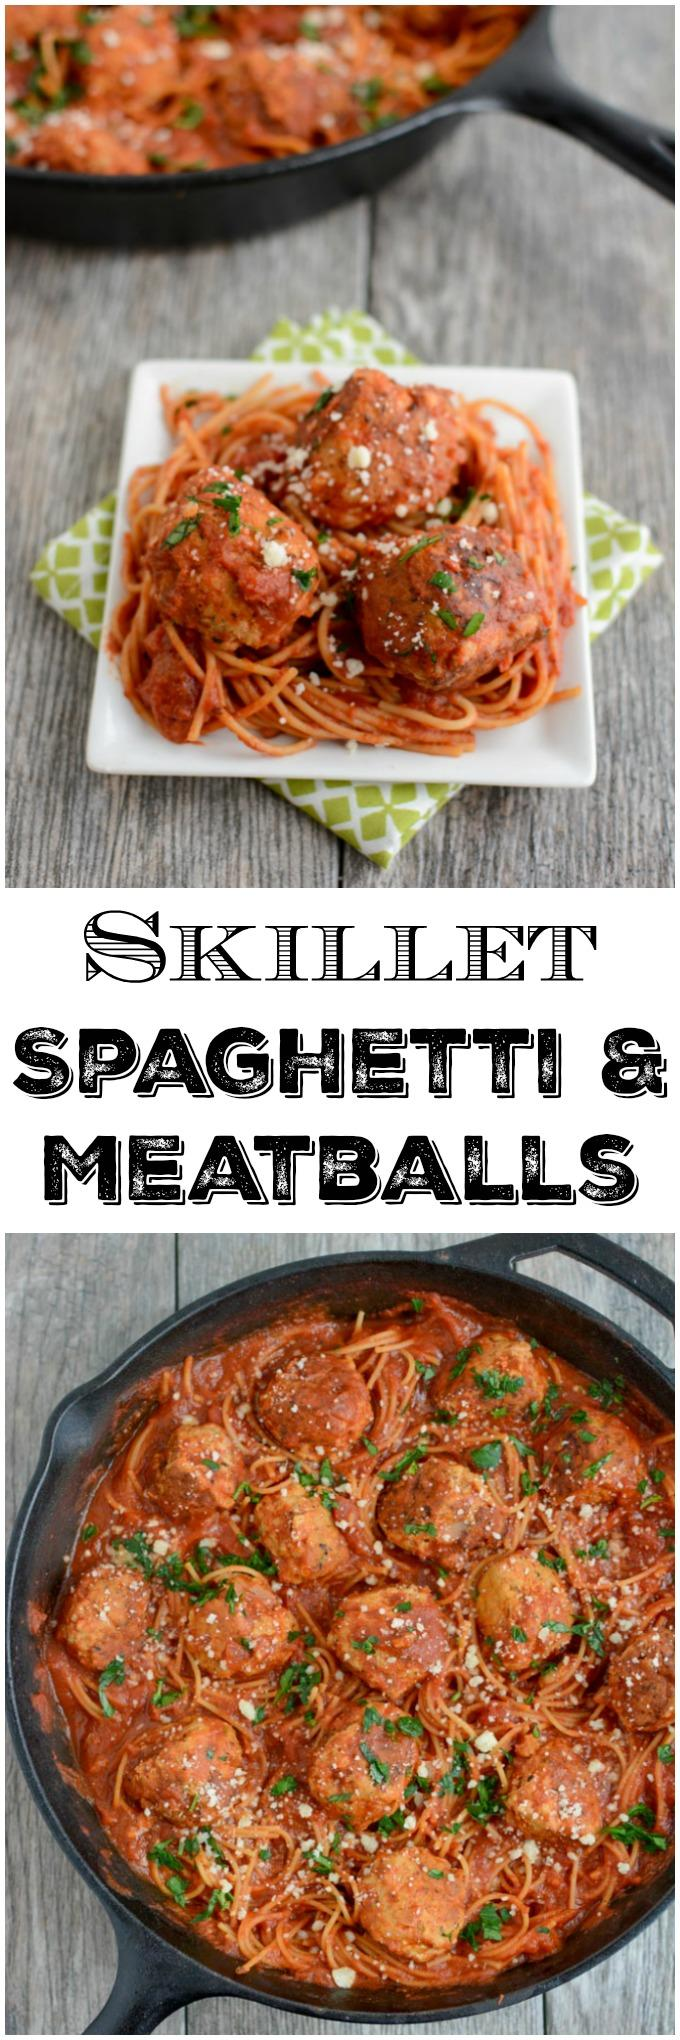 You only need one pan to make this recipe for Skillet Spaghetti and Meatballs because the spaghetti cooks right in the sauce! Your weeknight dinner just got even easier!